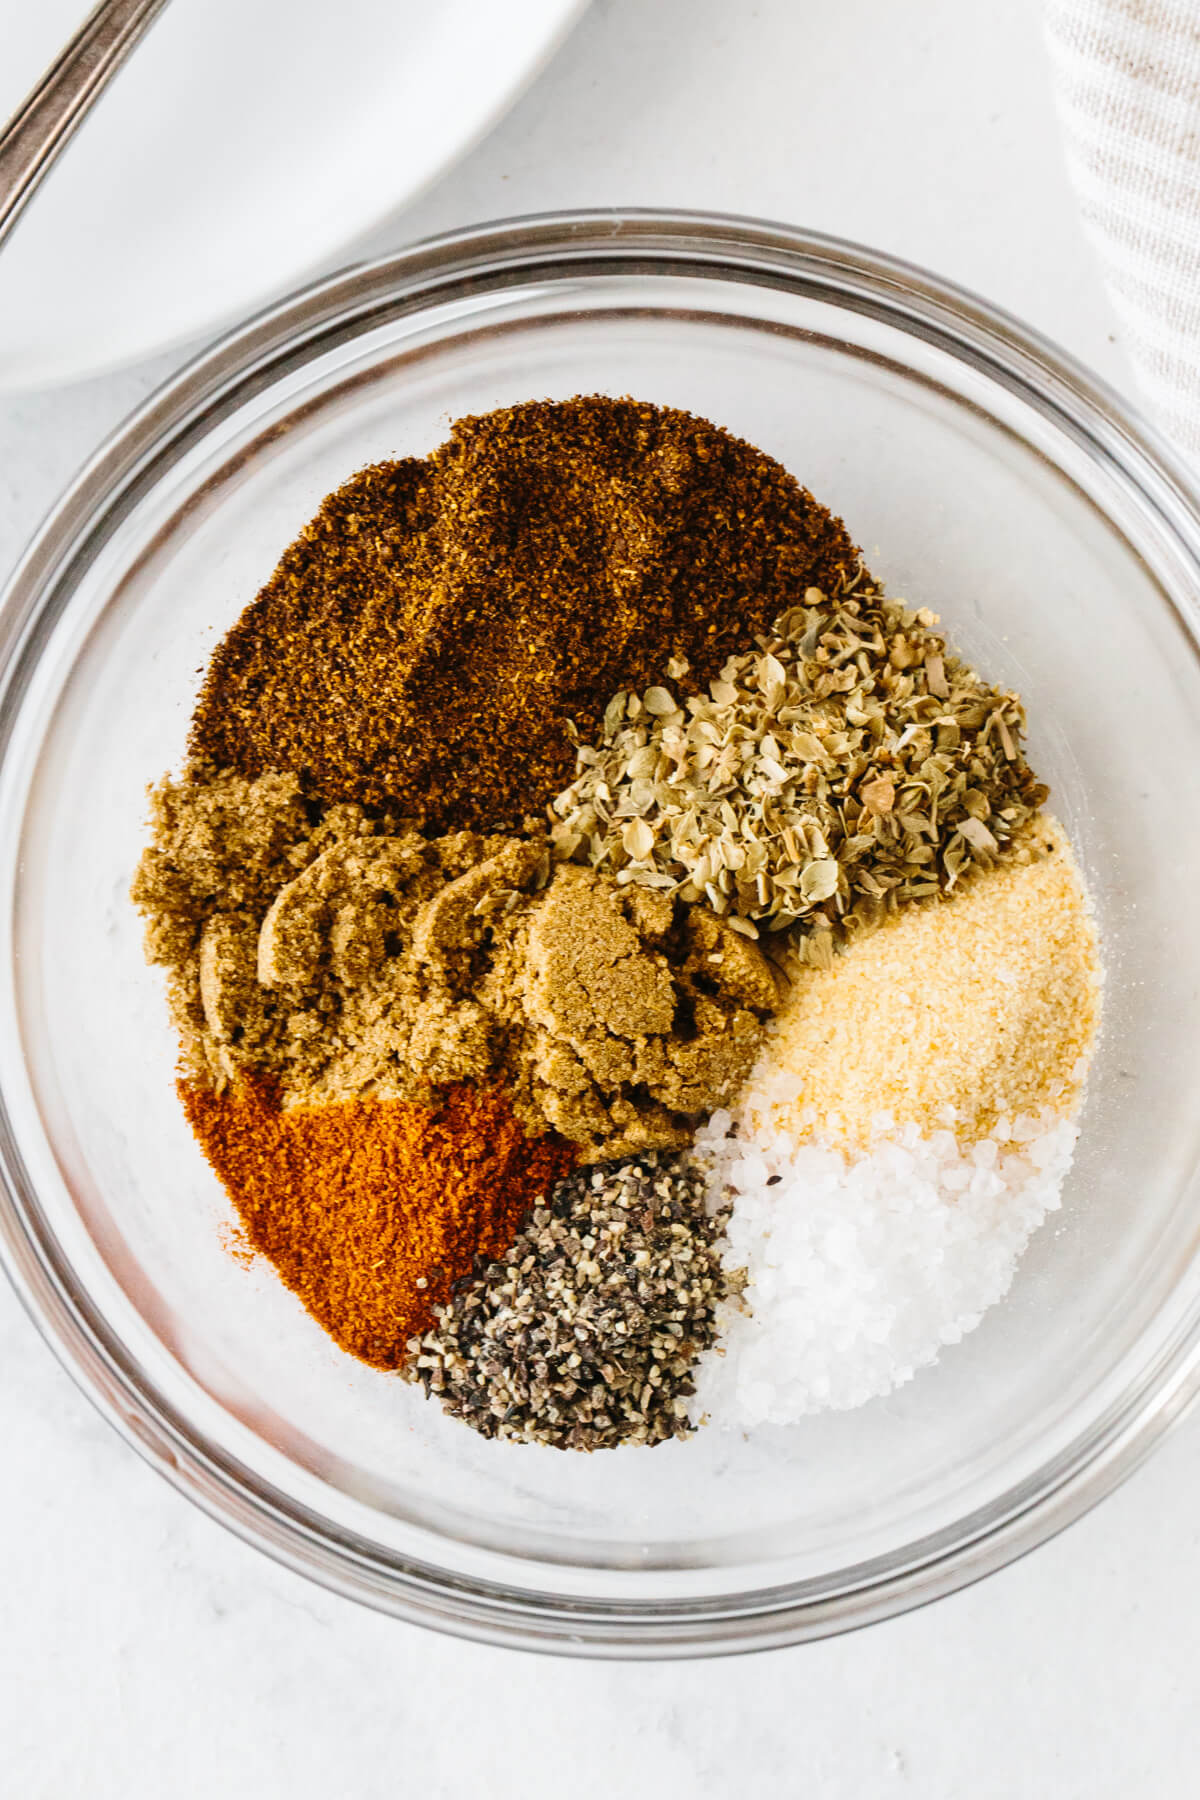 Fajita seasoning ingredients in a bowl.